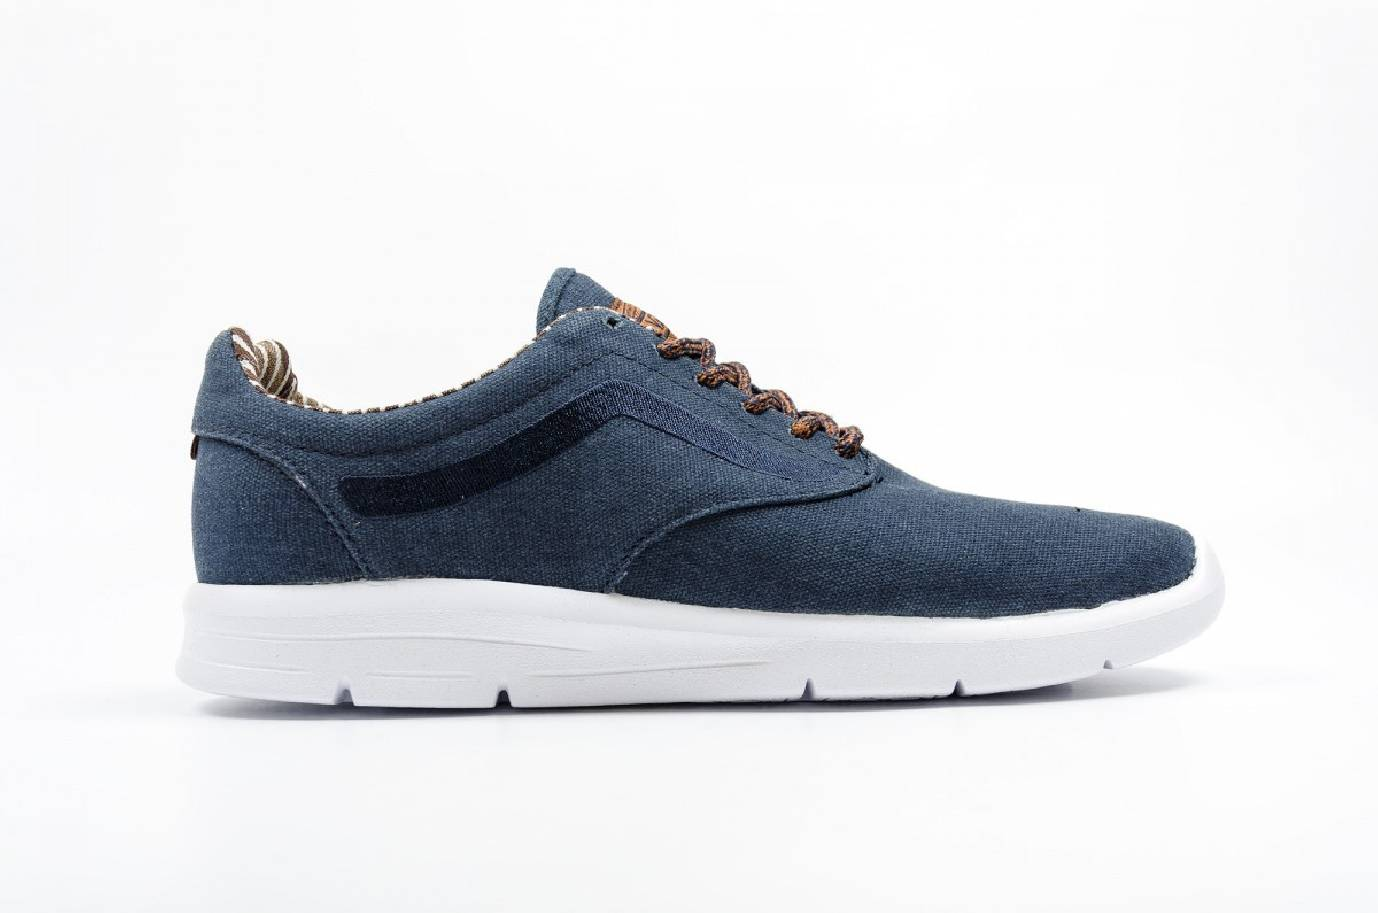 ZAPATILLAS VANS - DRESS BLUES/WHITE - ISO 1.5+